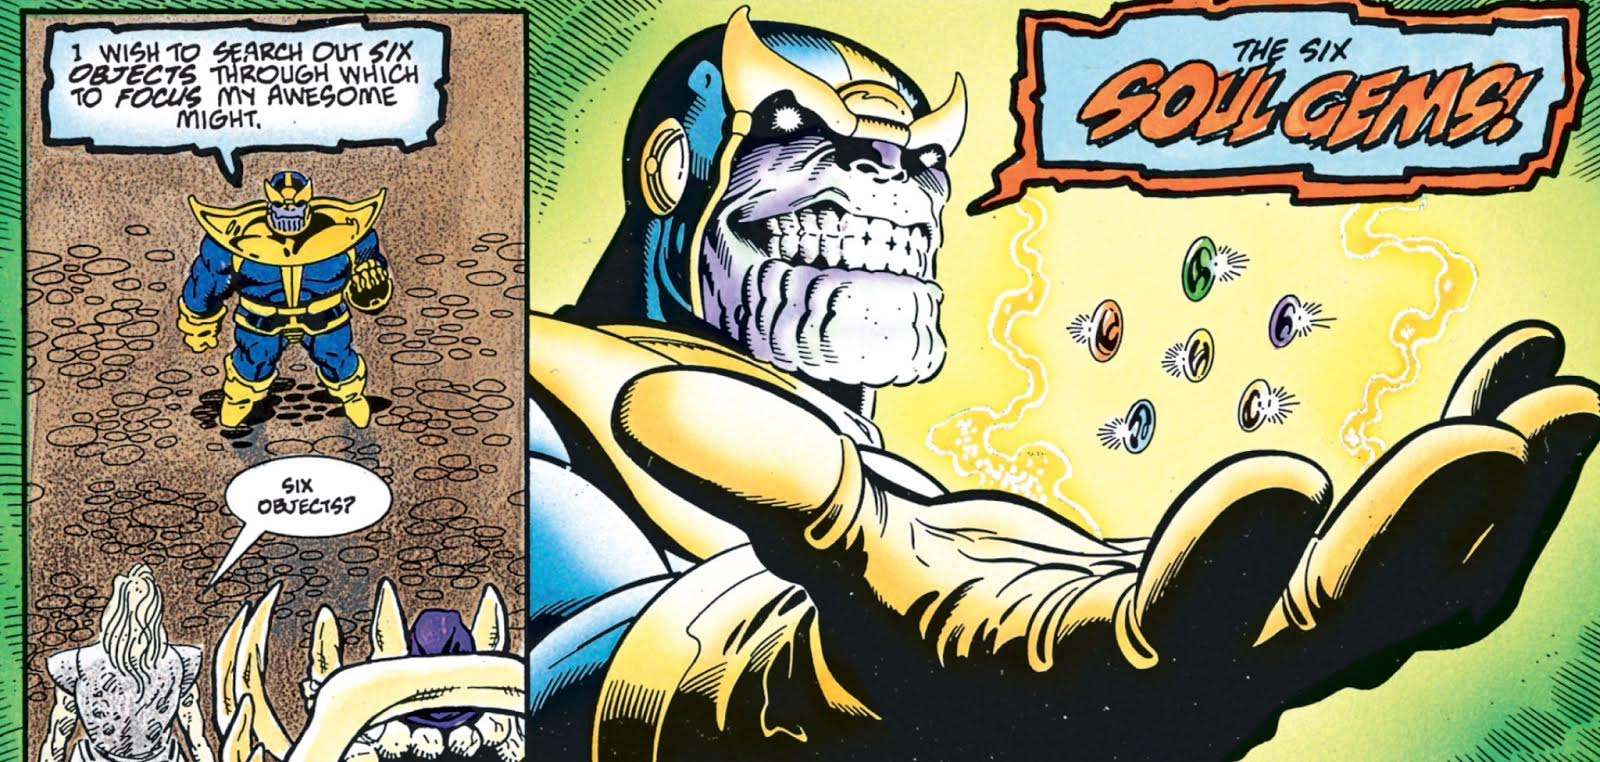 Is This The Road To Avengers: Infinity War? The Thanos Quest.